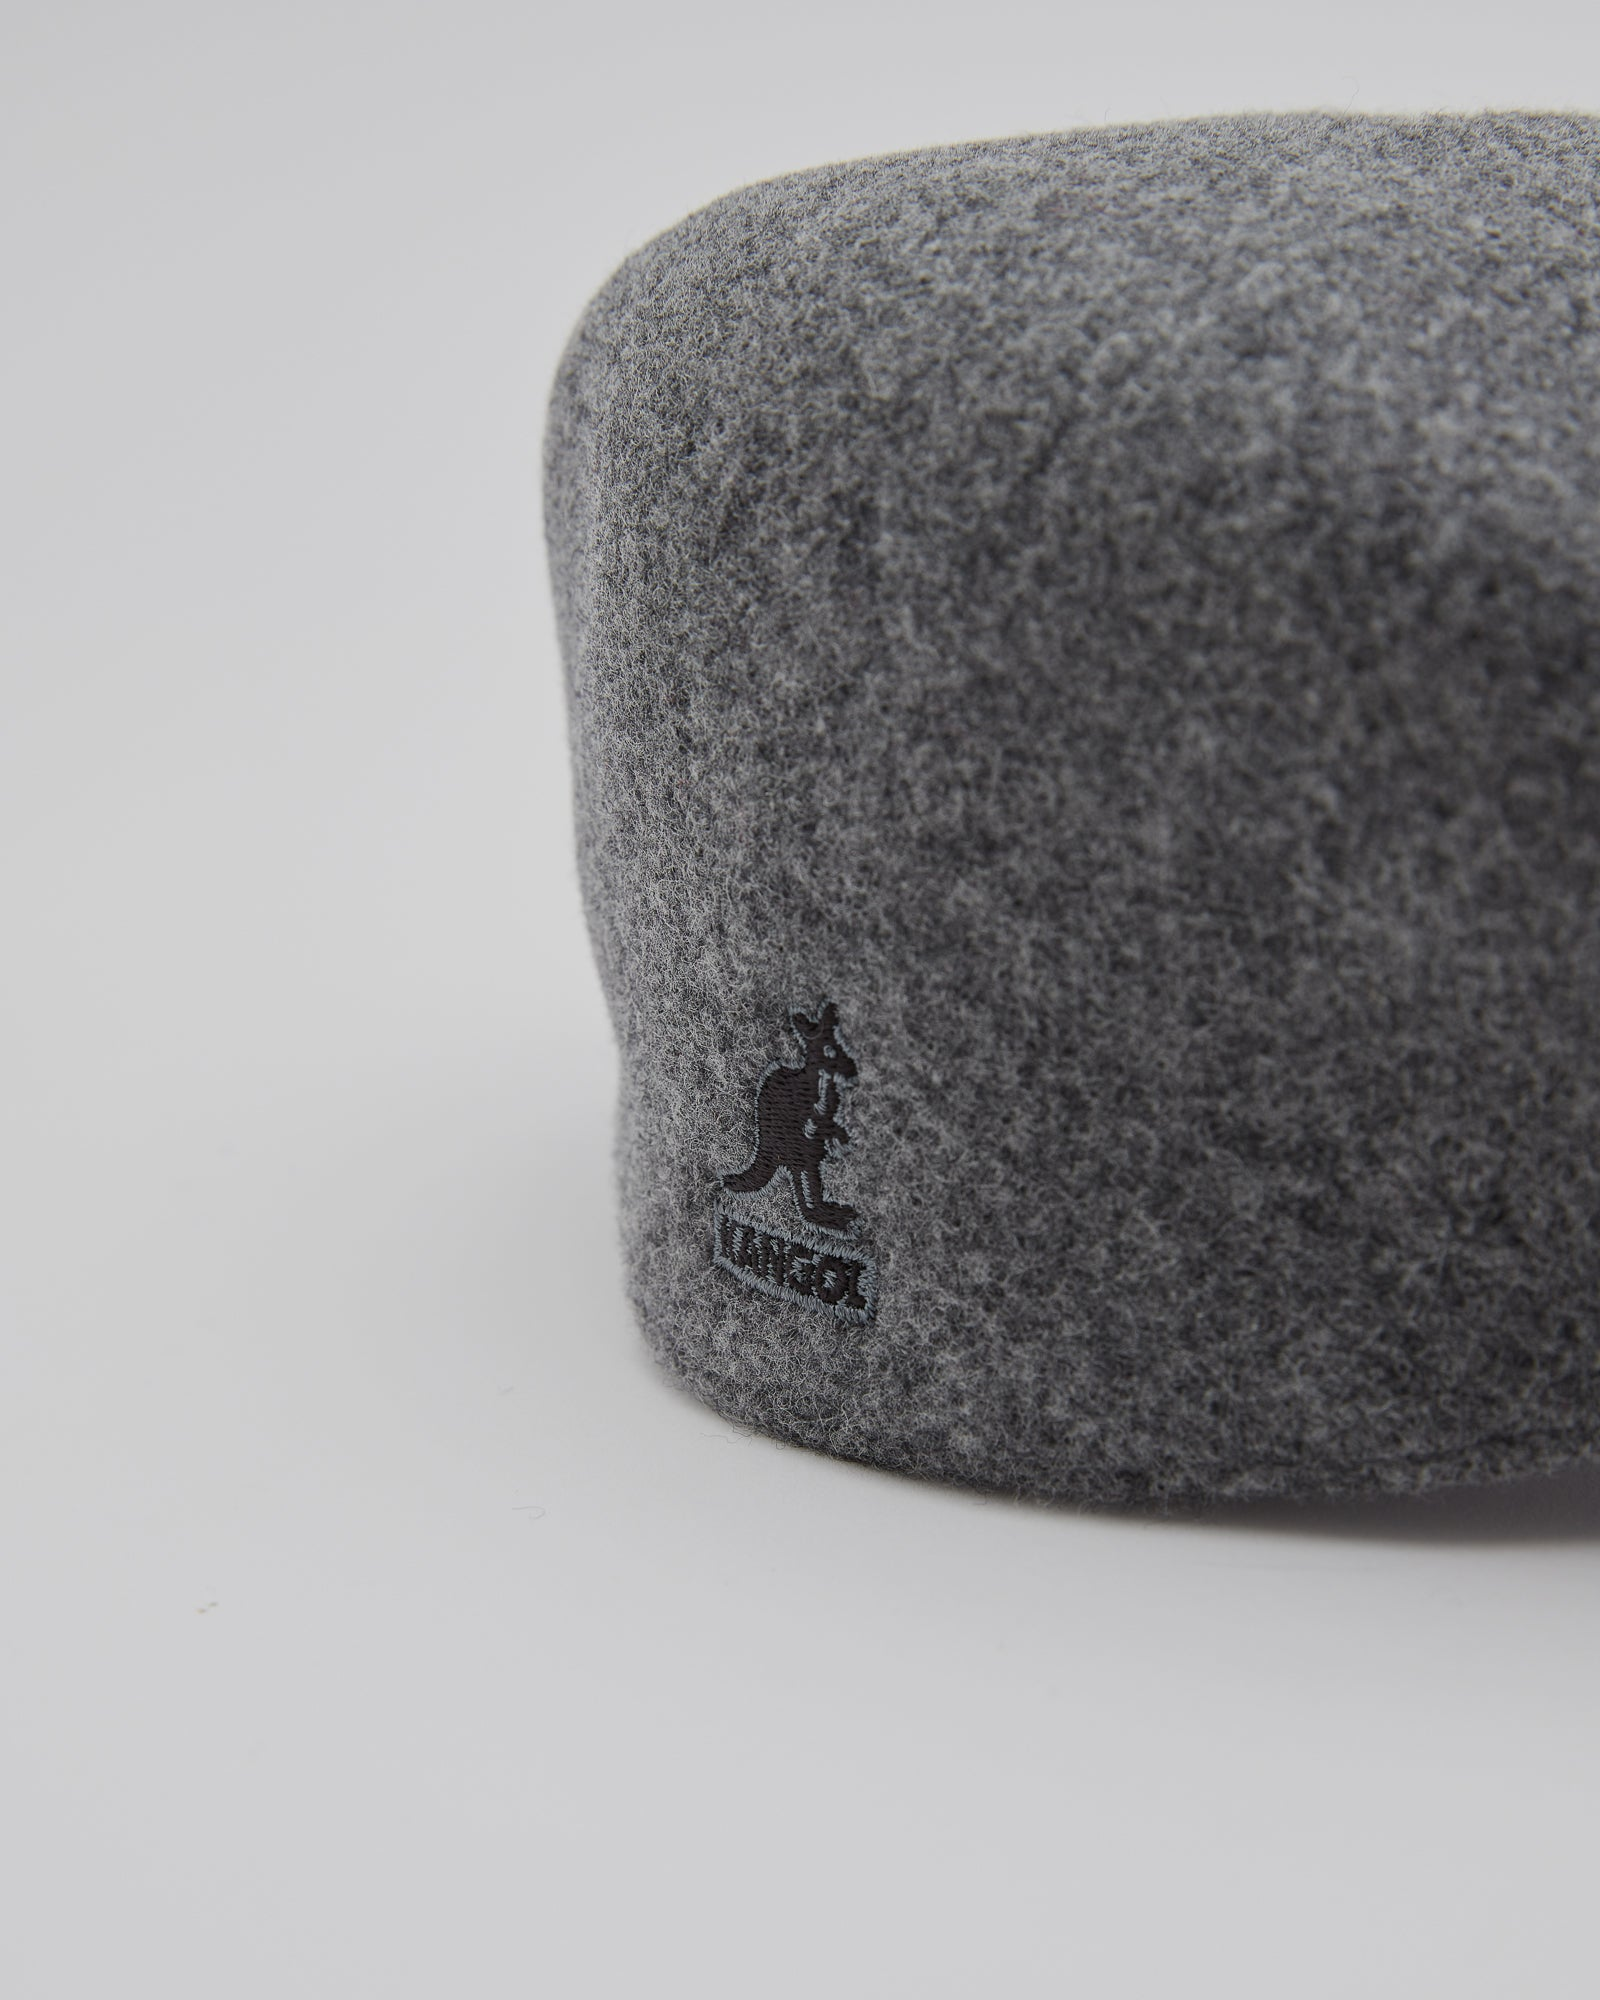 504 Kangol Cap in Flannel Gray